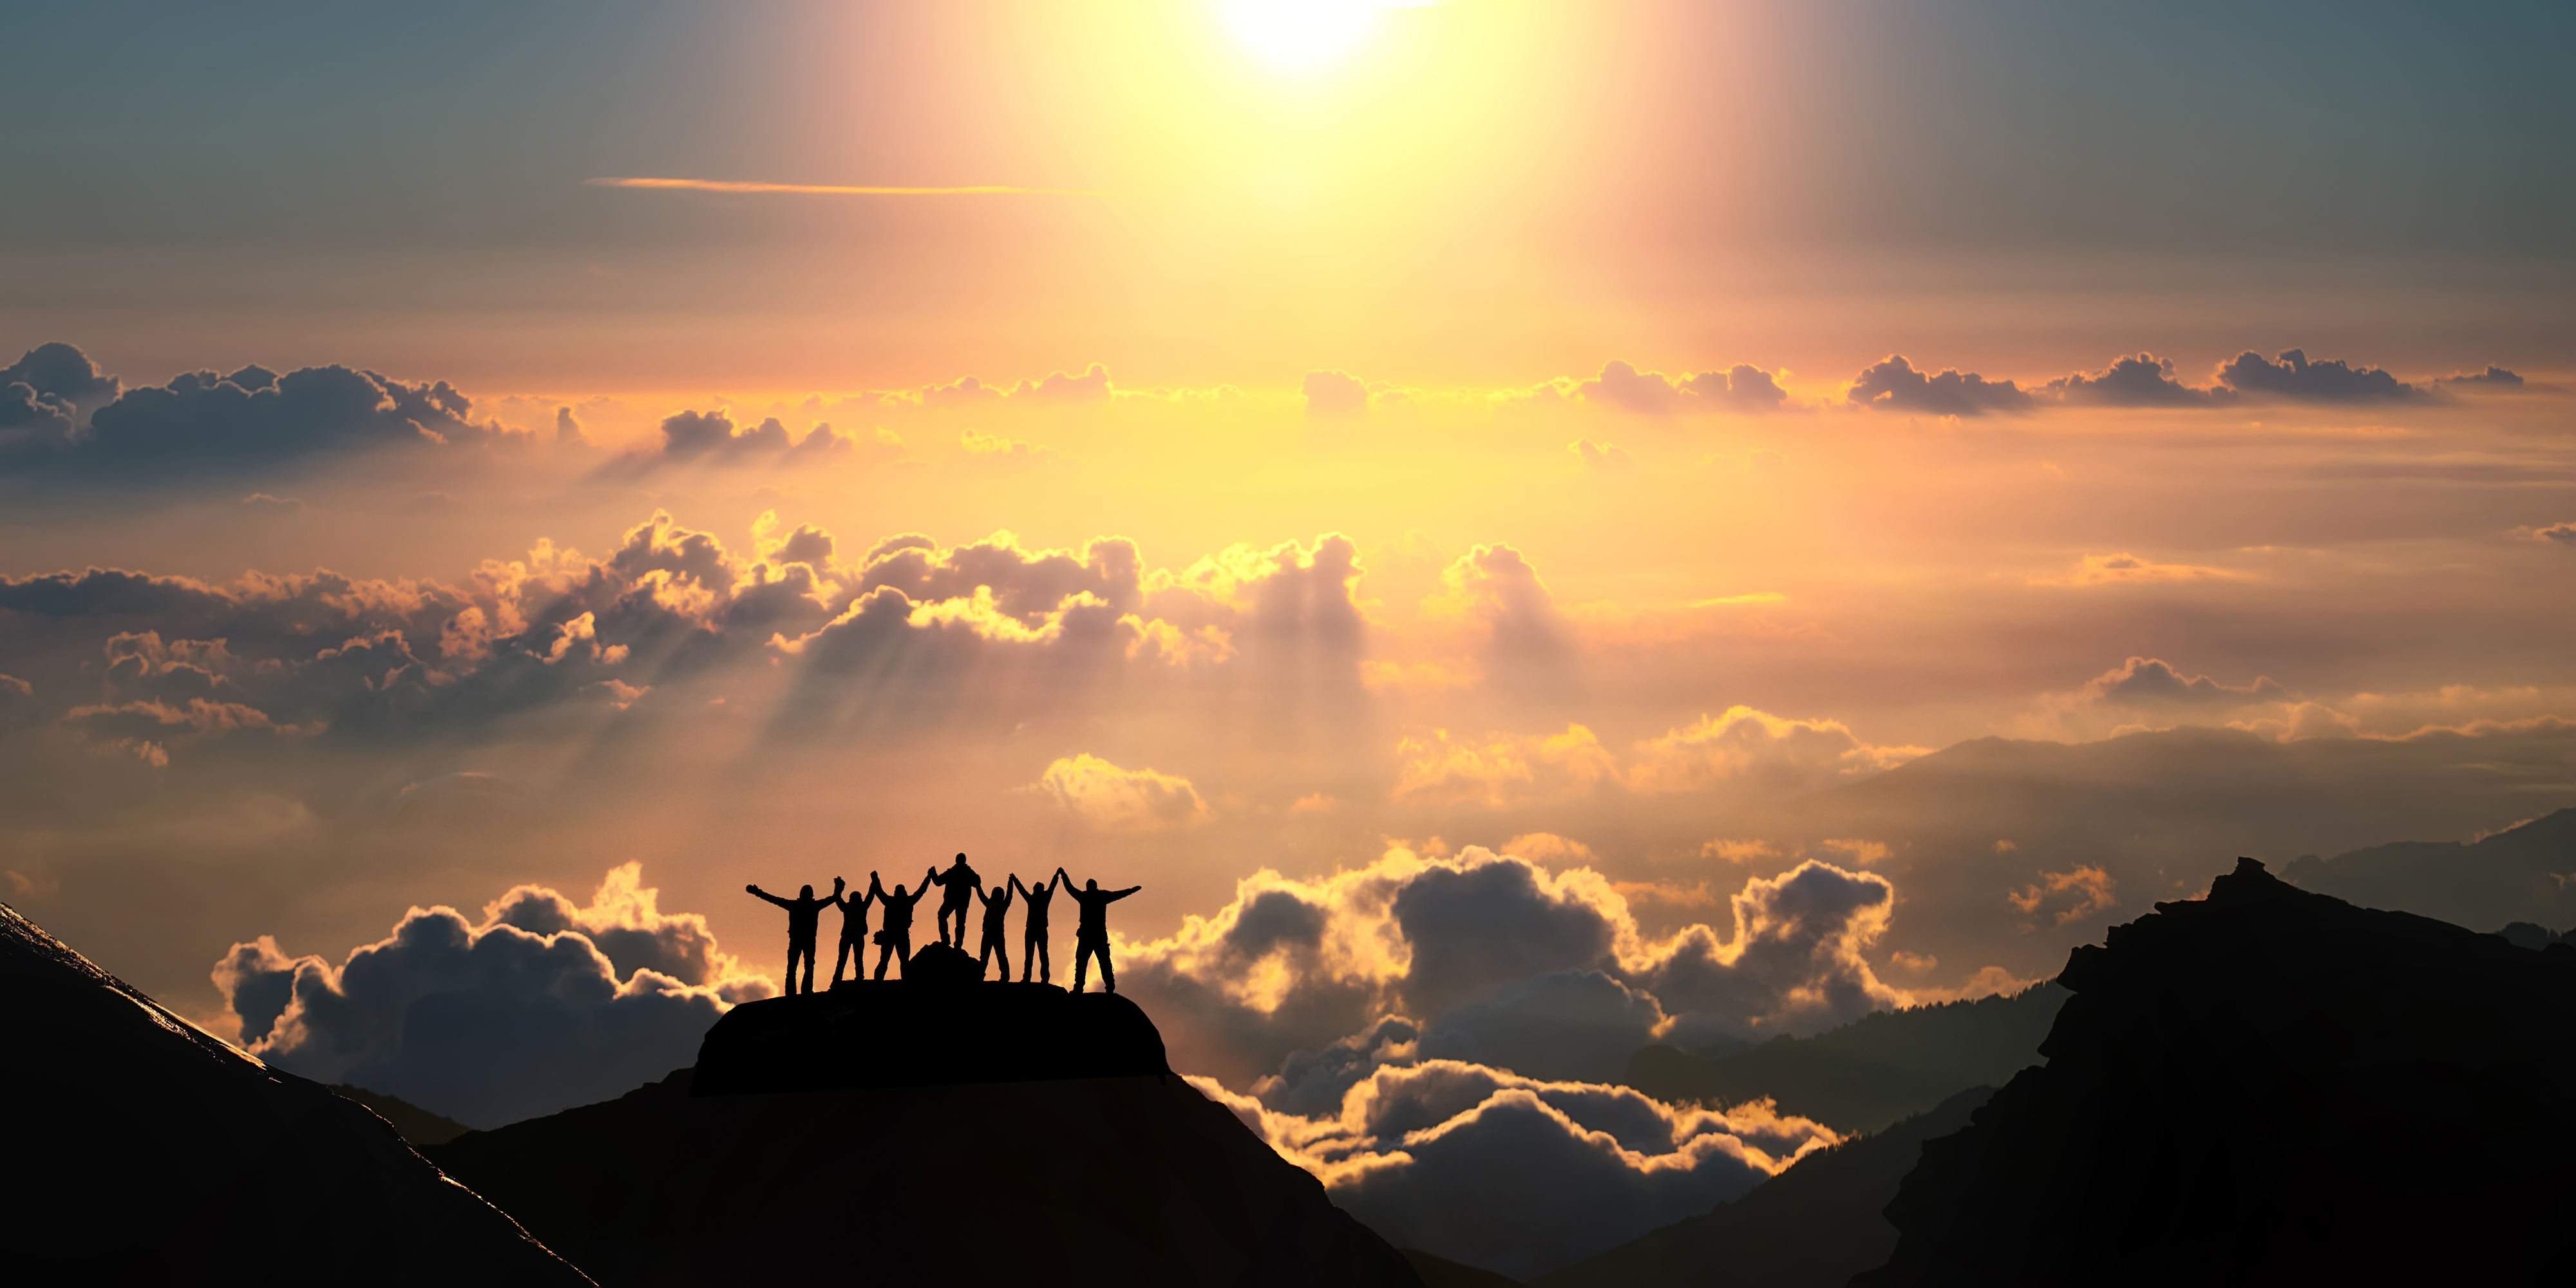 Team of people standing together on top of a mountain